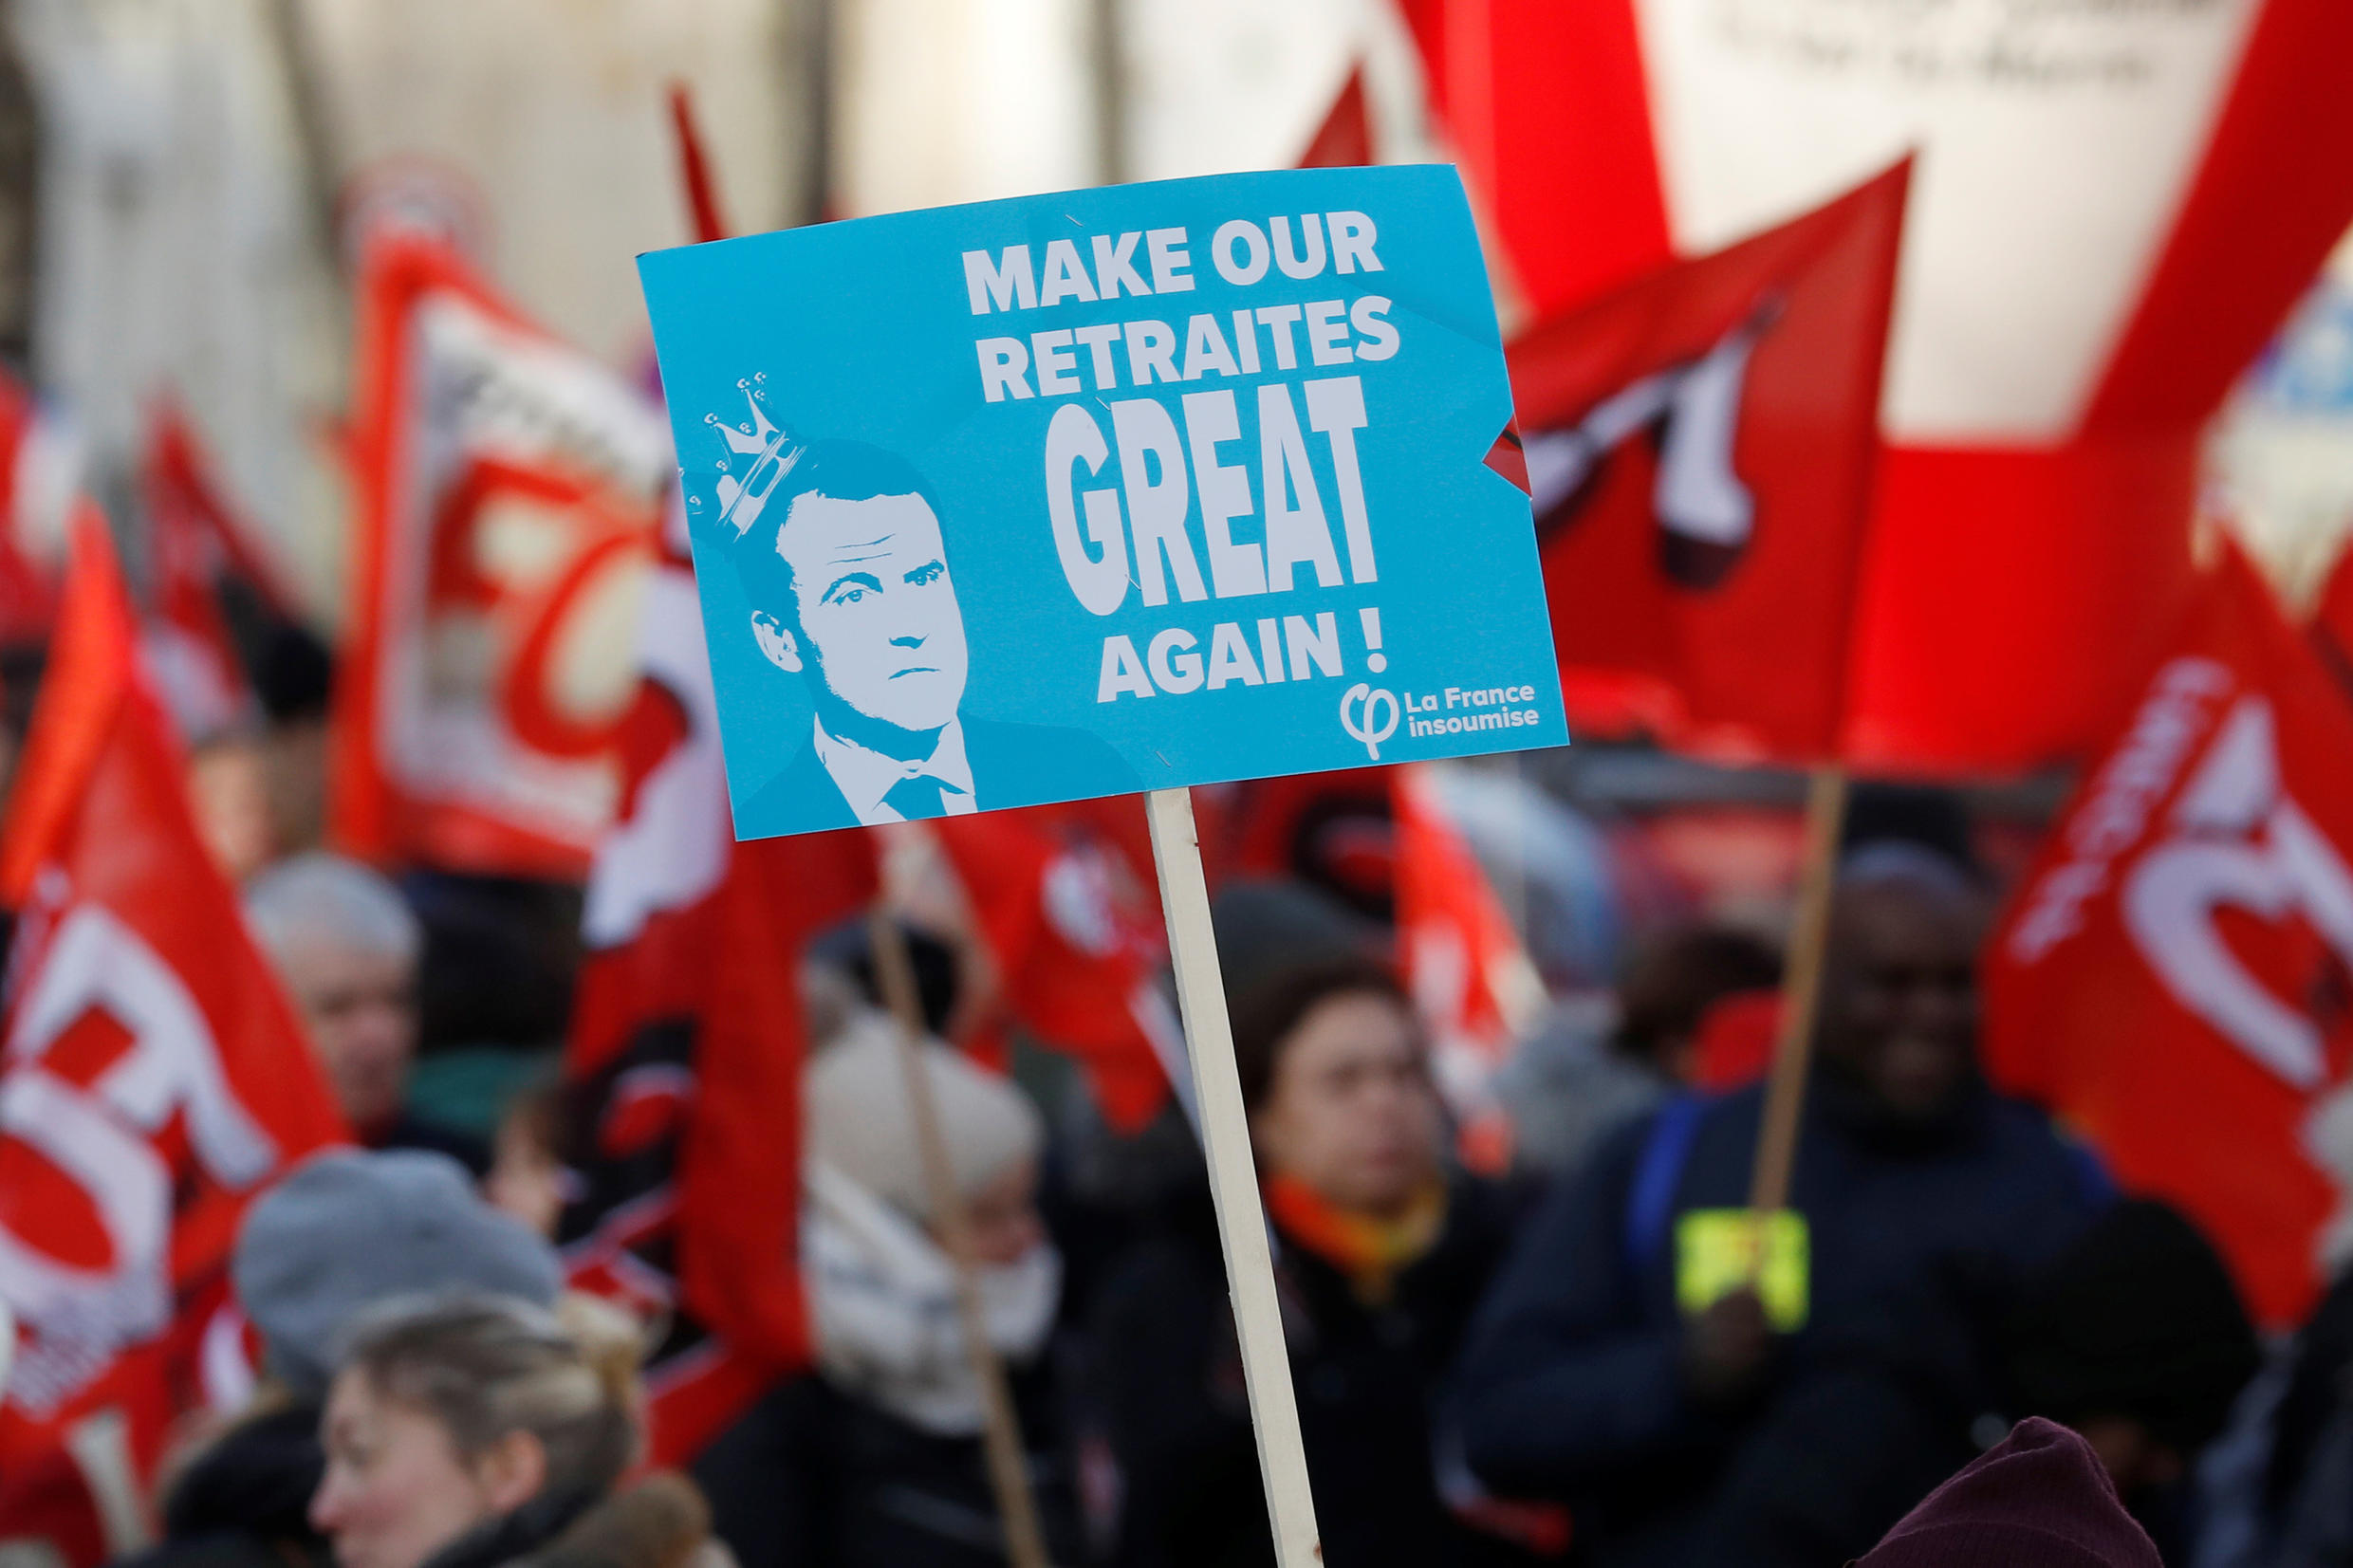 """A protest in Paris against French President Emmanuel Macron's plans to reform the country's pension system, known in France as """"retraites""""."""